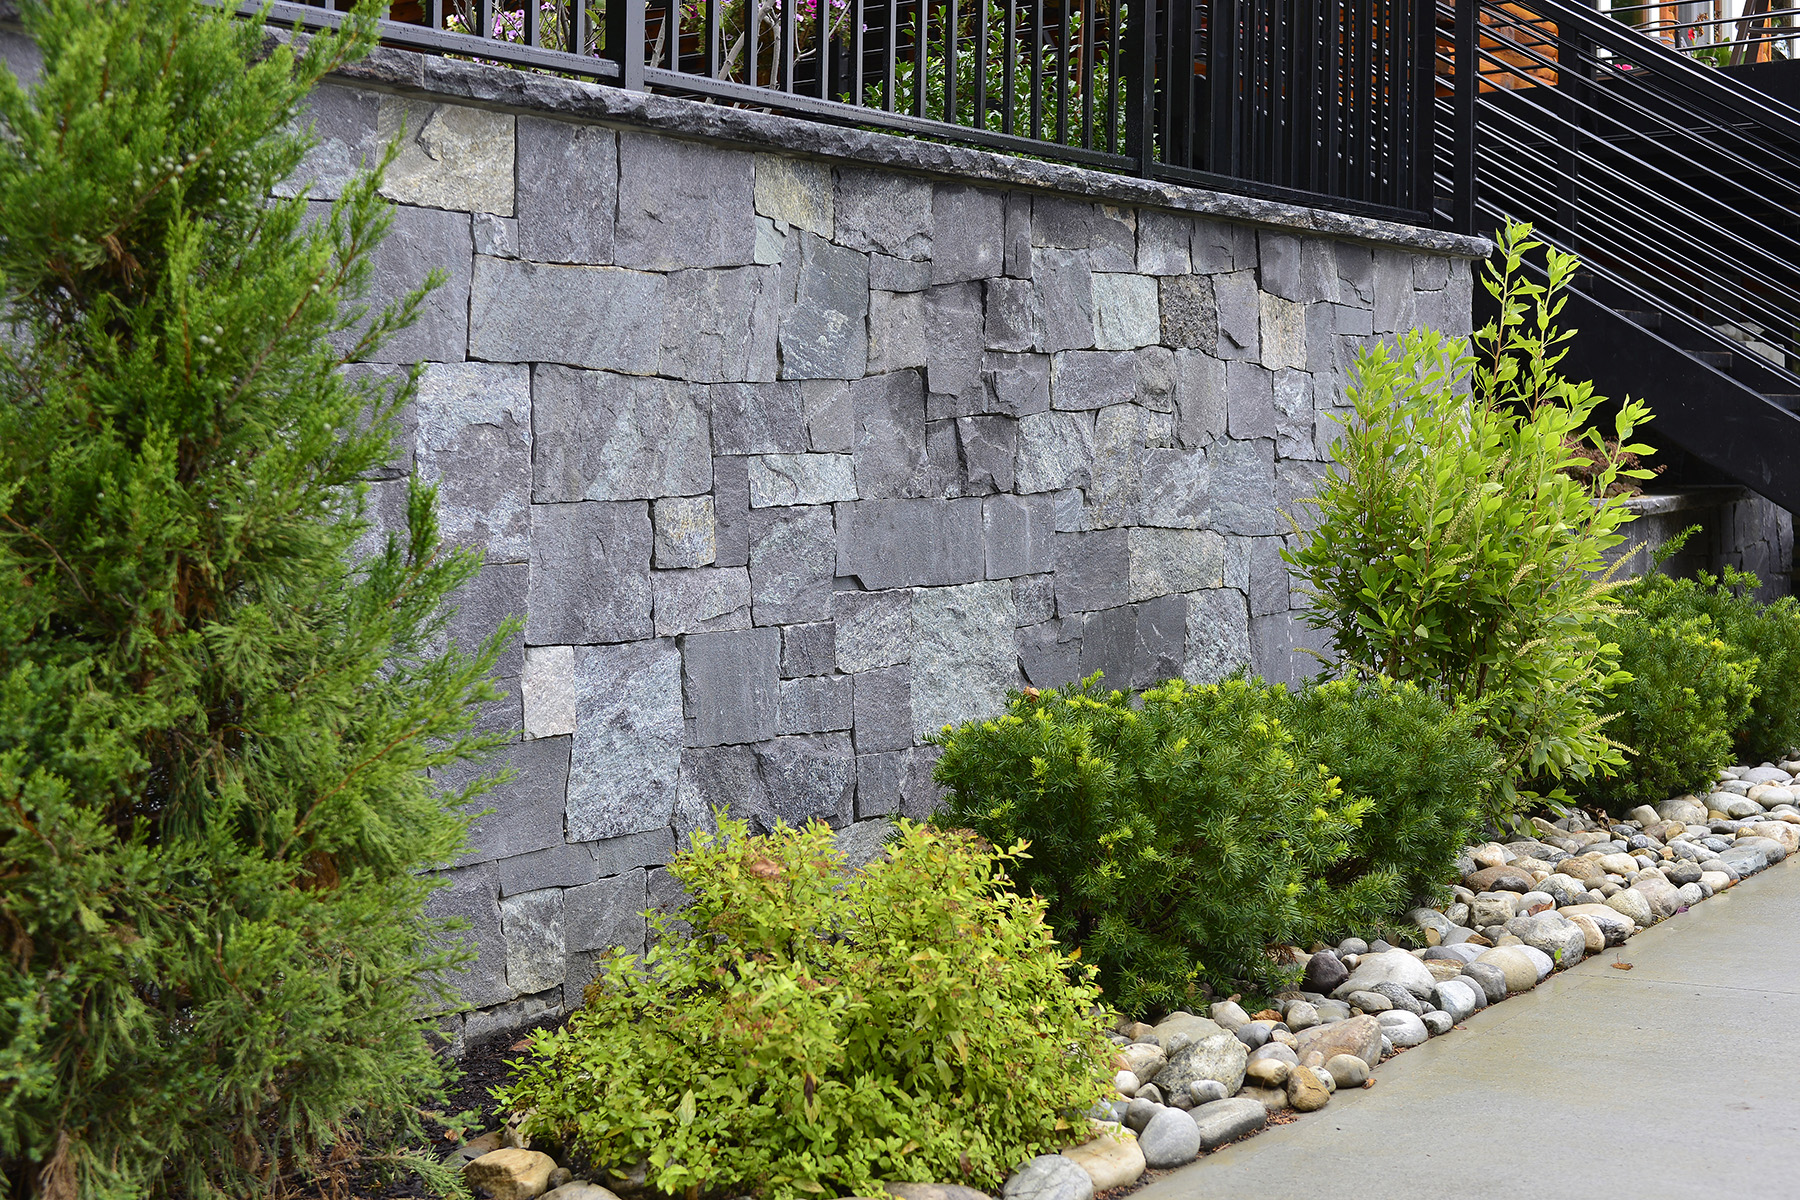 stone wall with small bushes in front